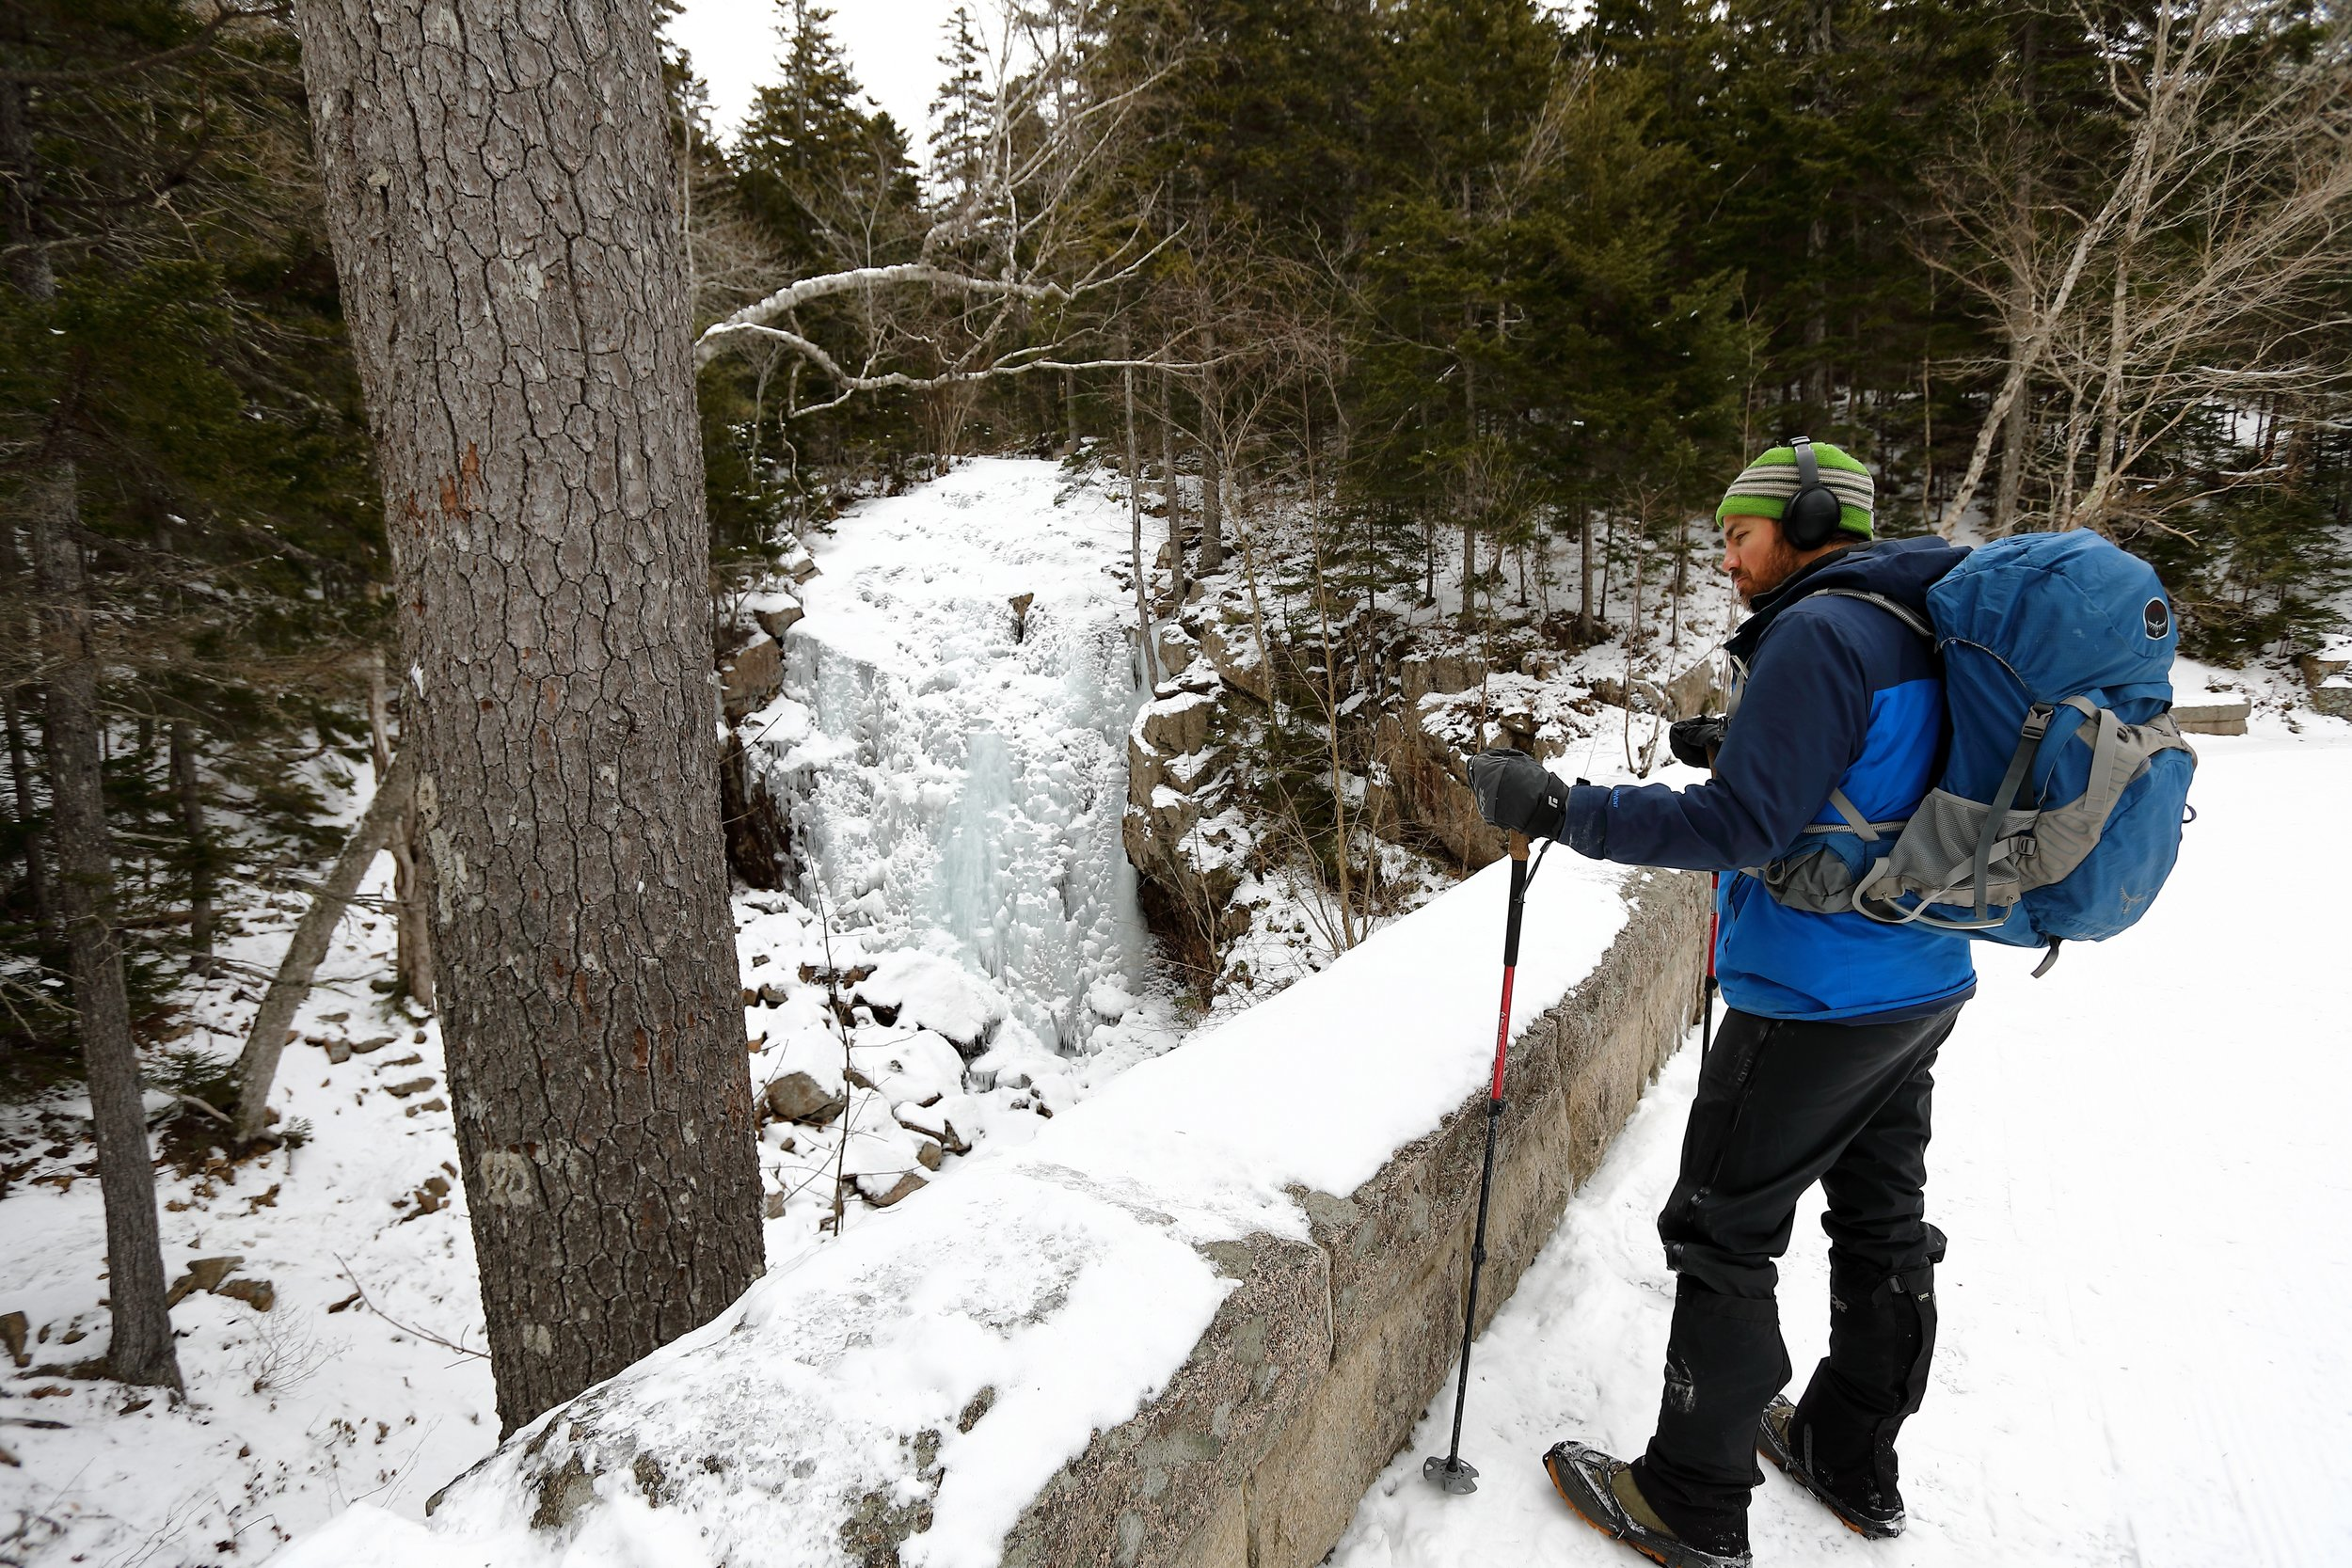 Enjoying the frozen waterfall on the carriage road before making our way up the Hadlock Brook Trail to the summit of Sargent Mountain.